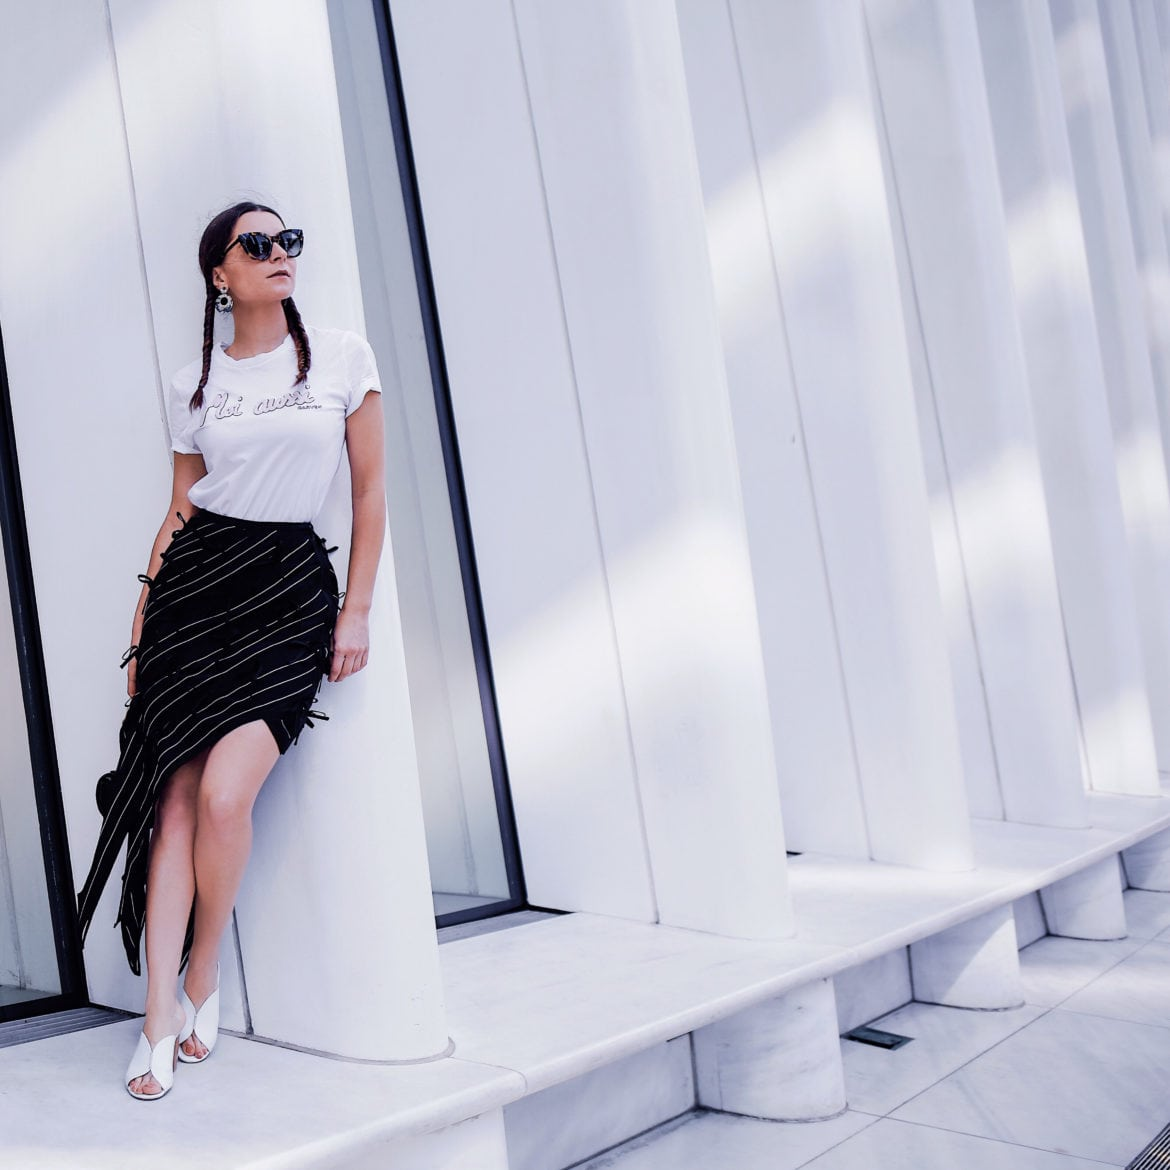 Street Style - New York style: the pin striped skirt by Self Portrait via If Chic. By Julia Comil french fashion blogger